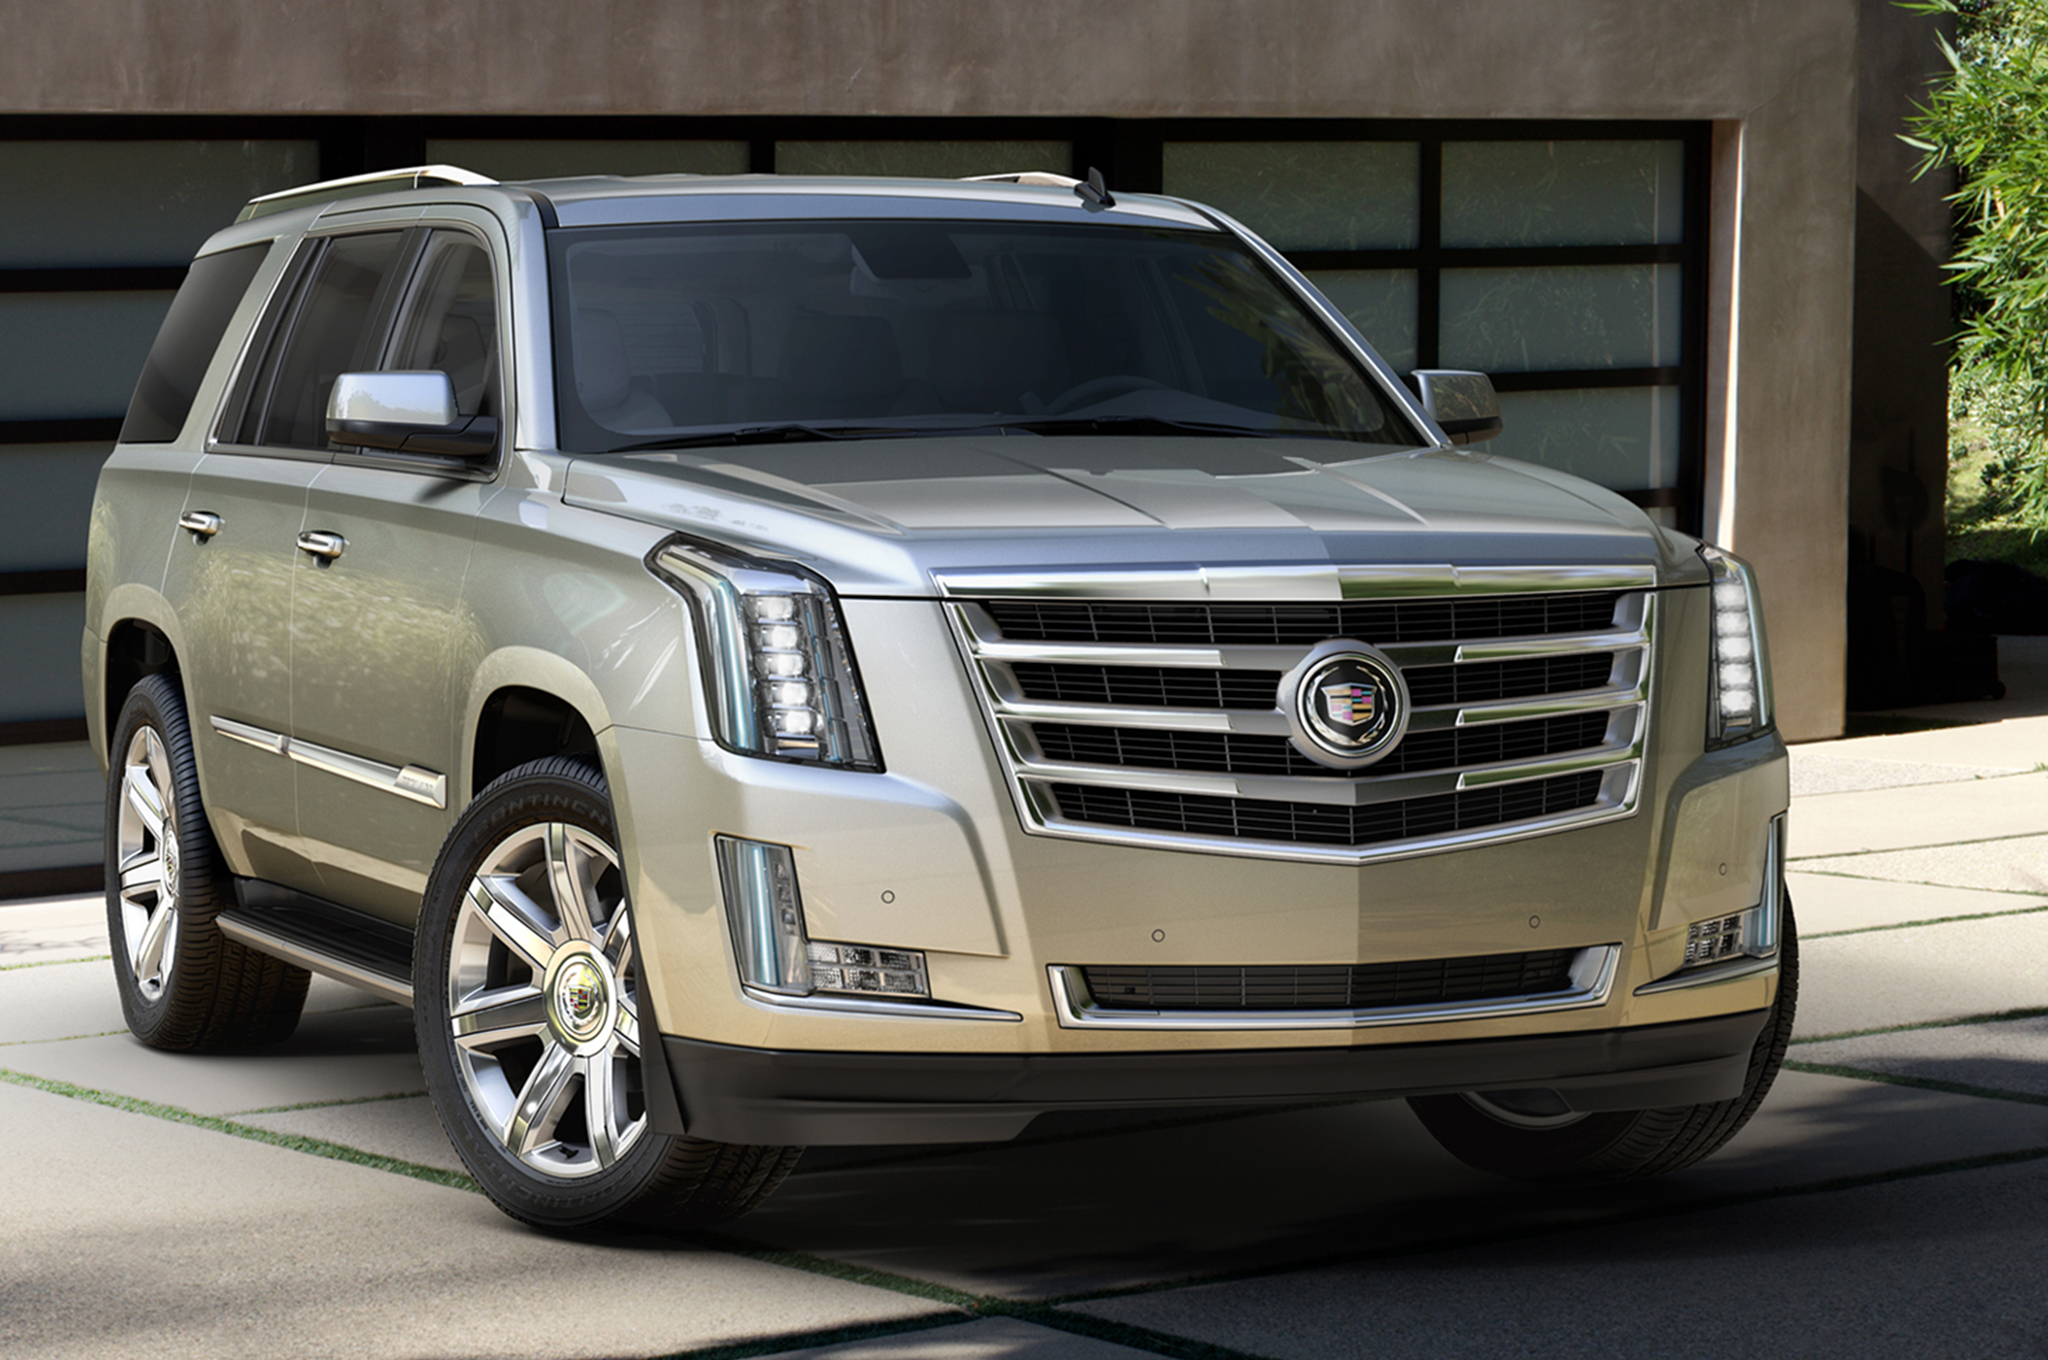 2015-Cadillac-Escalade-front-three-quarters-view-03